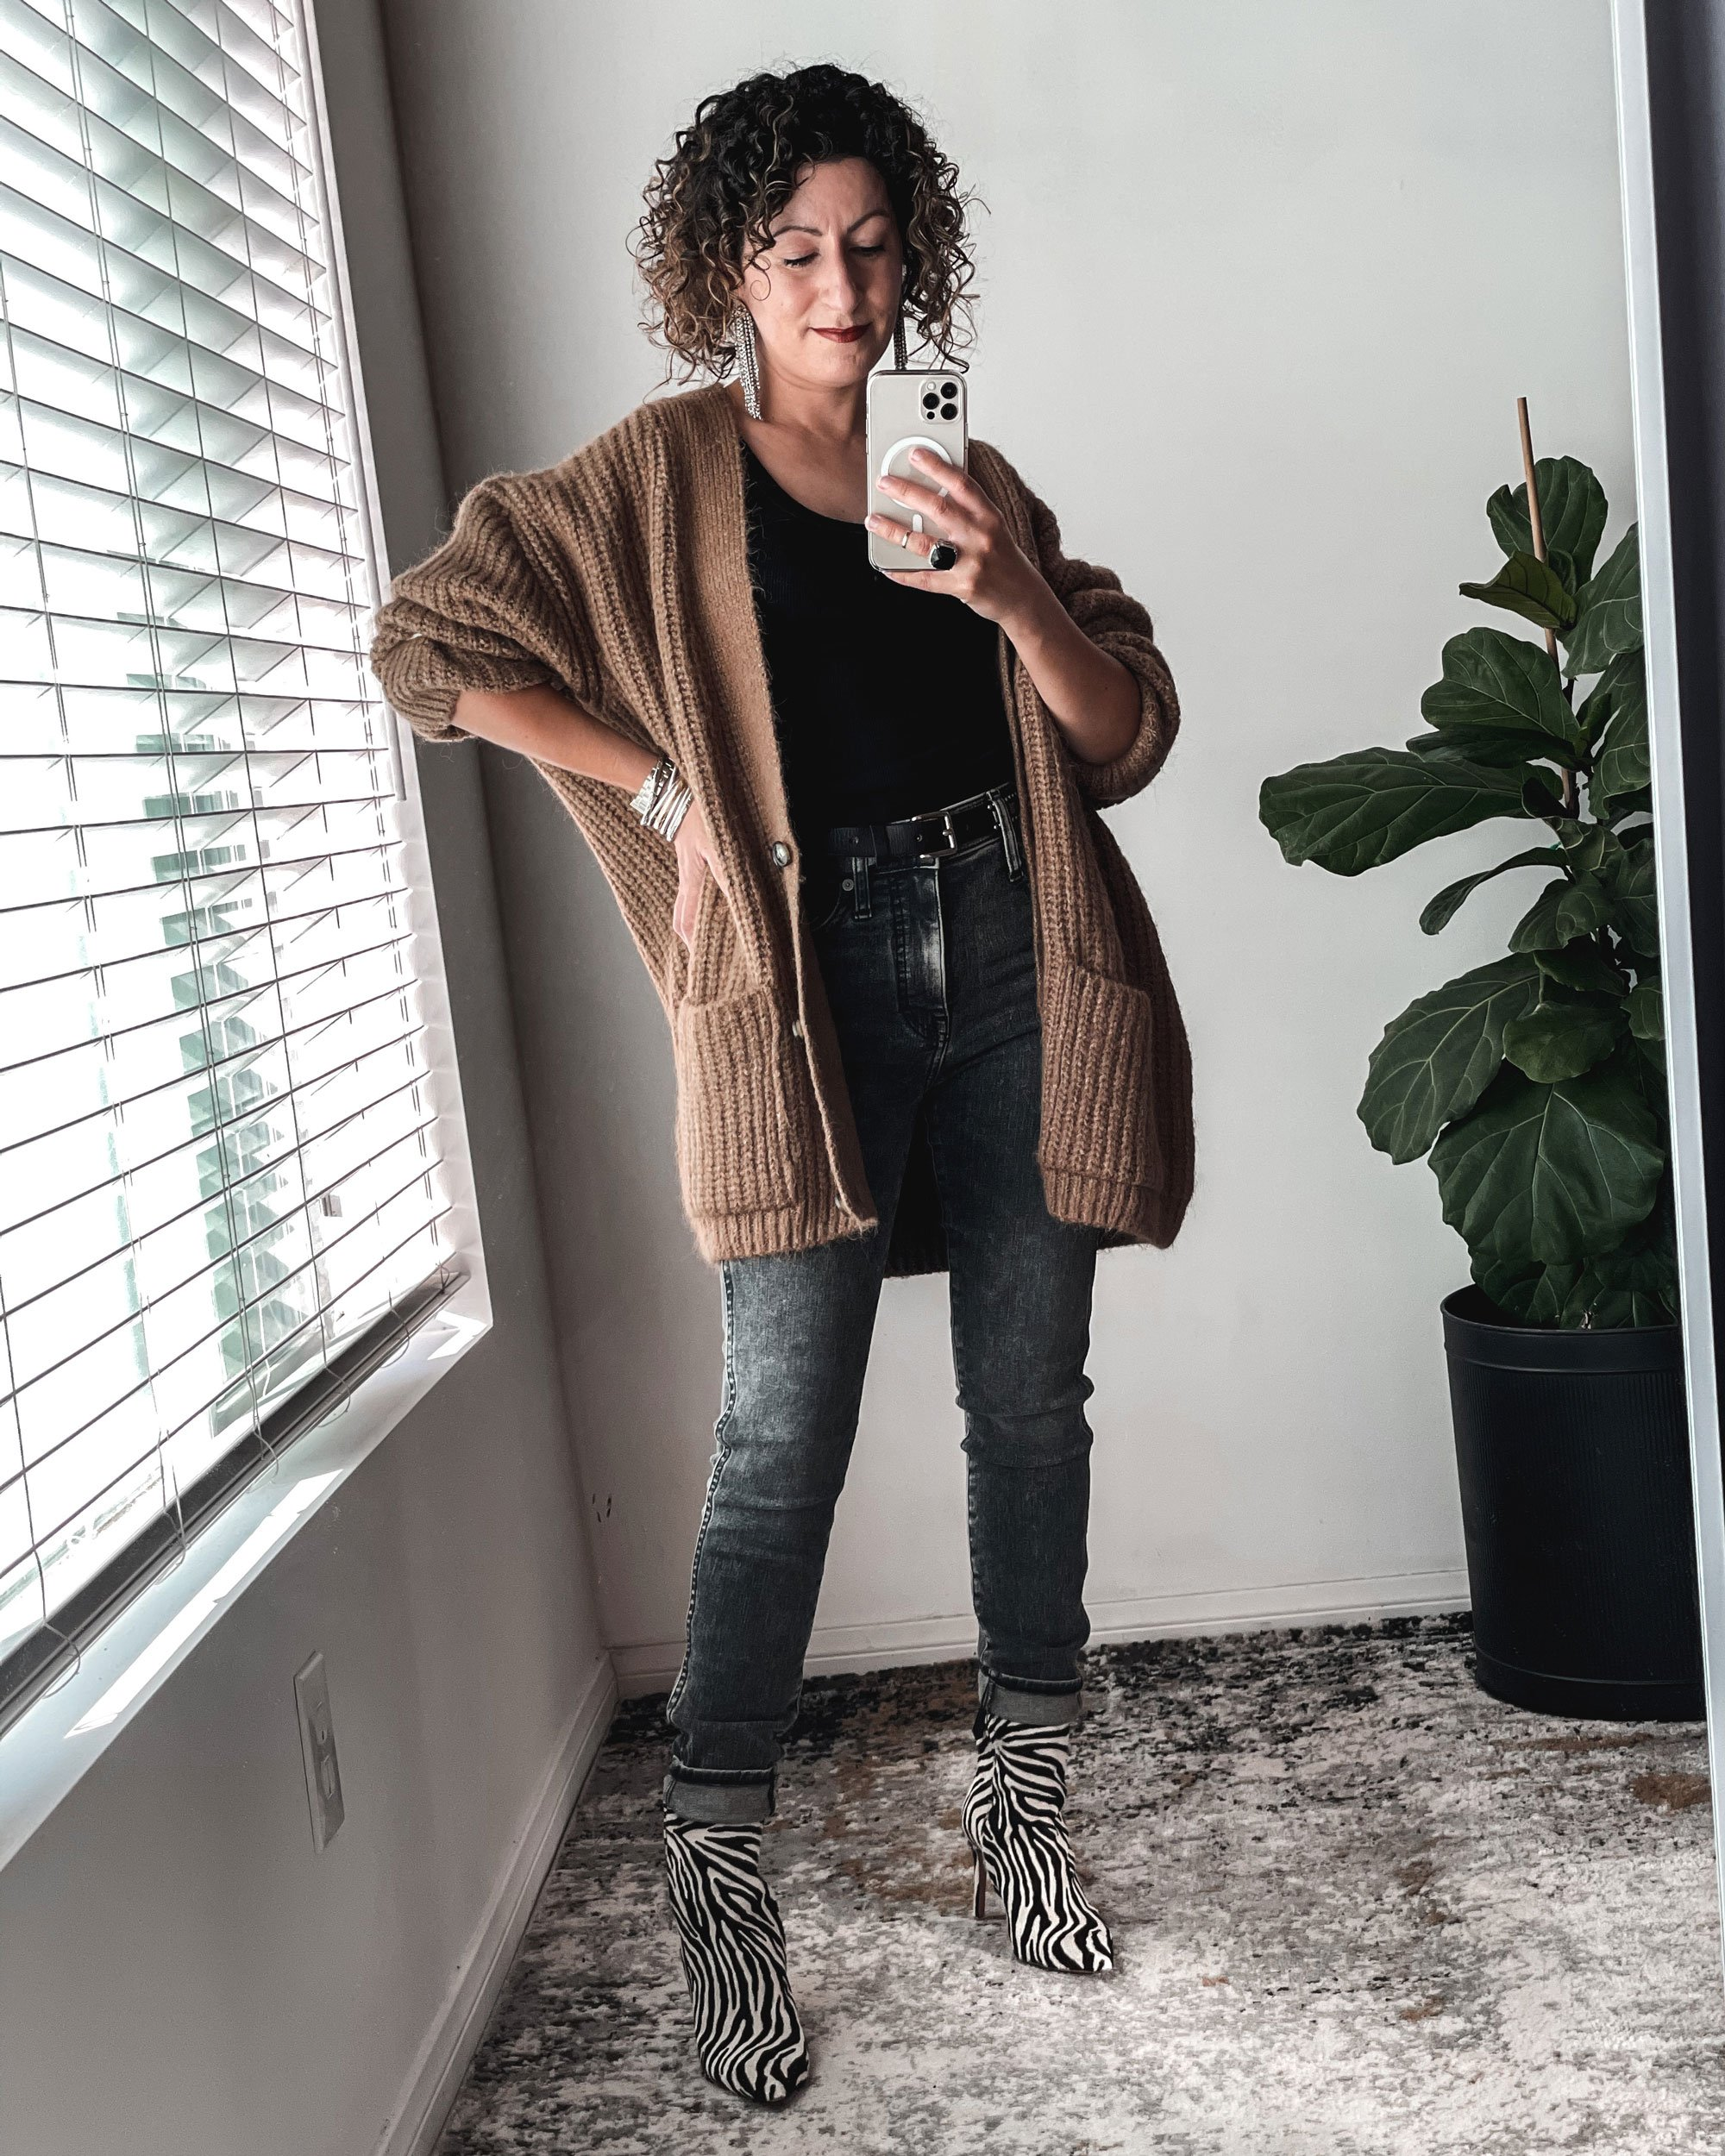 Zara and Madewell Purchases